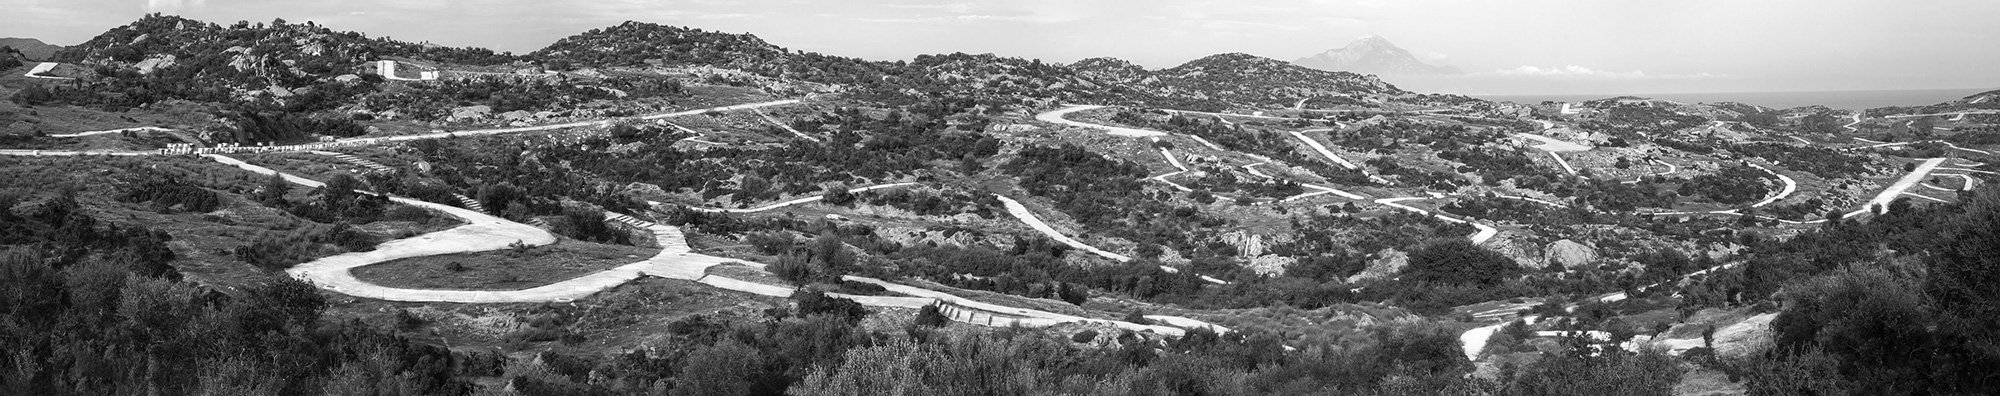 Roads and Ways 2 - Sithonia, Greece